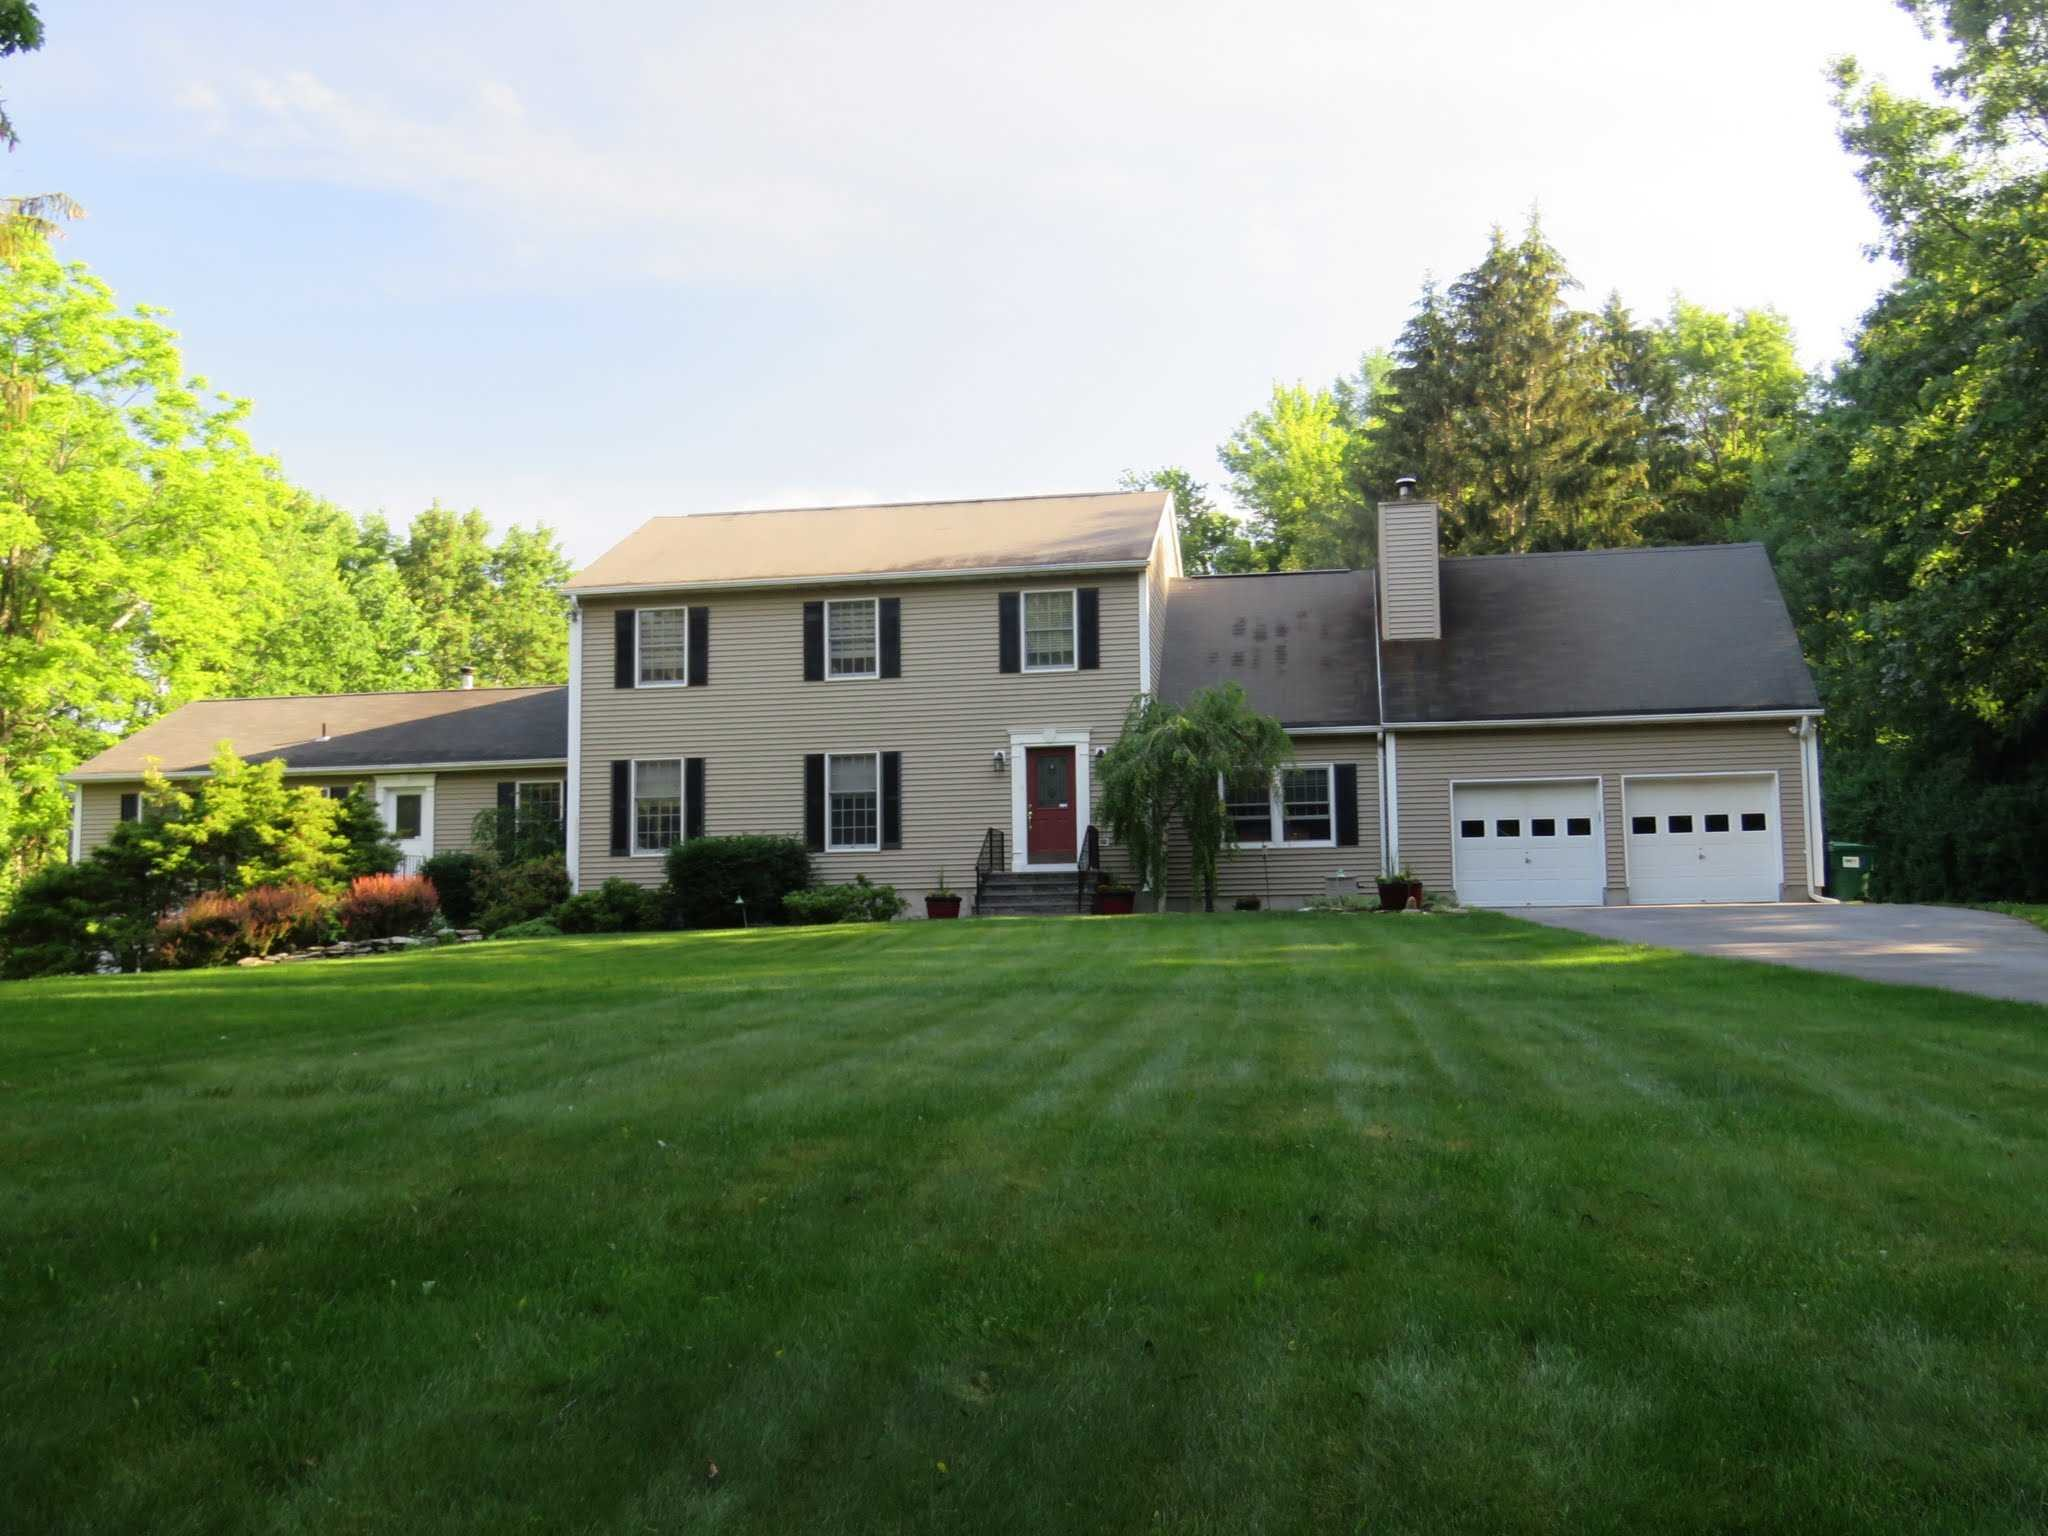 Single Family Home for Sale at 293 DRAKE ROAD 293 DRAKE ROAD Pleasant Valley, New York 12569 United States